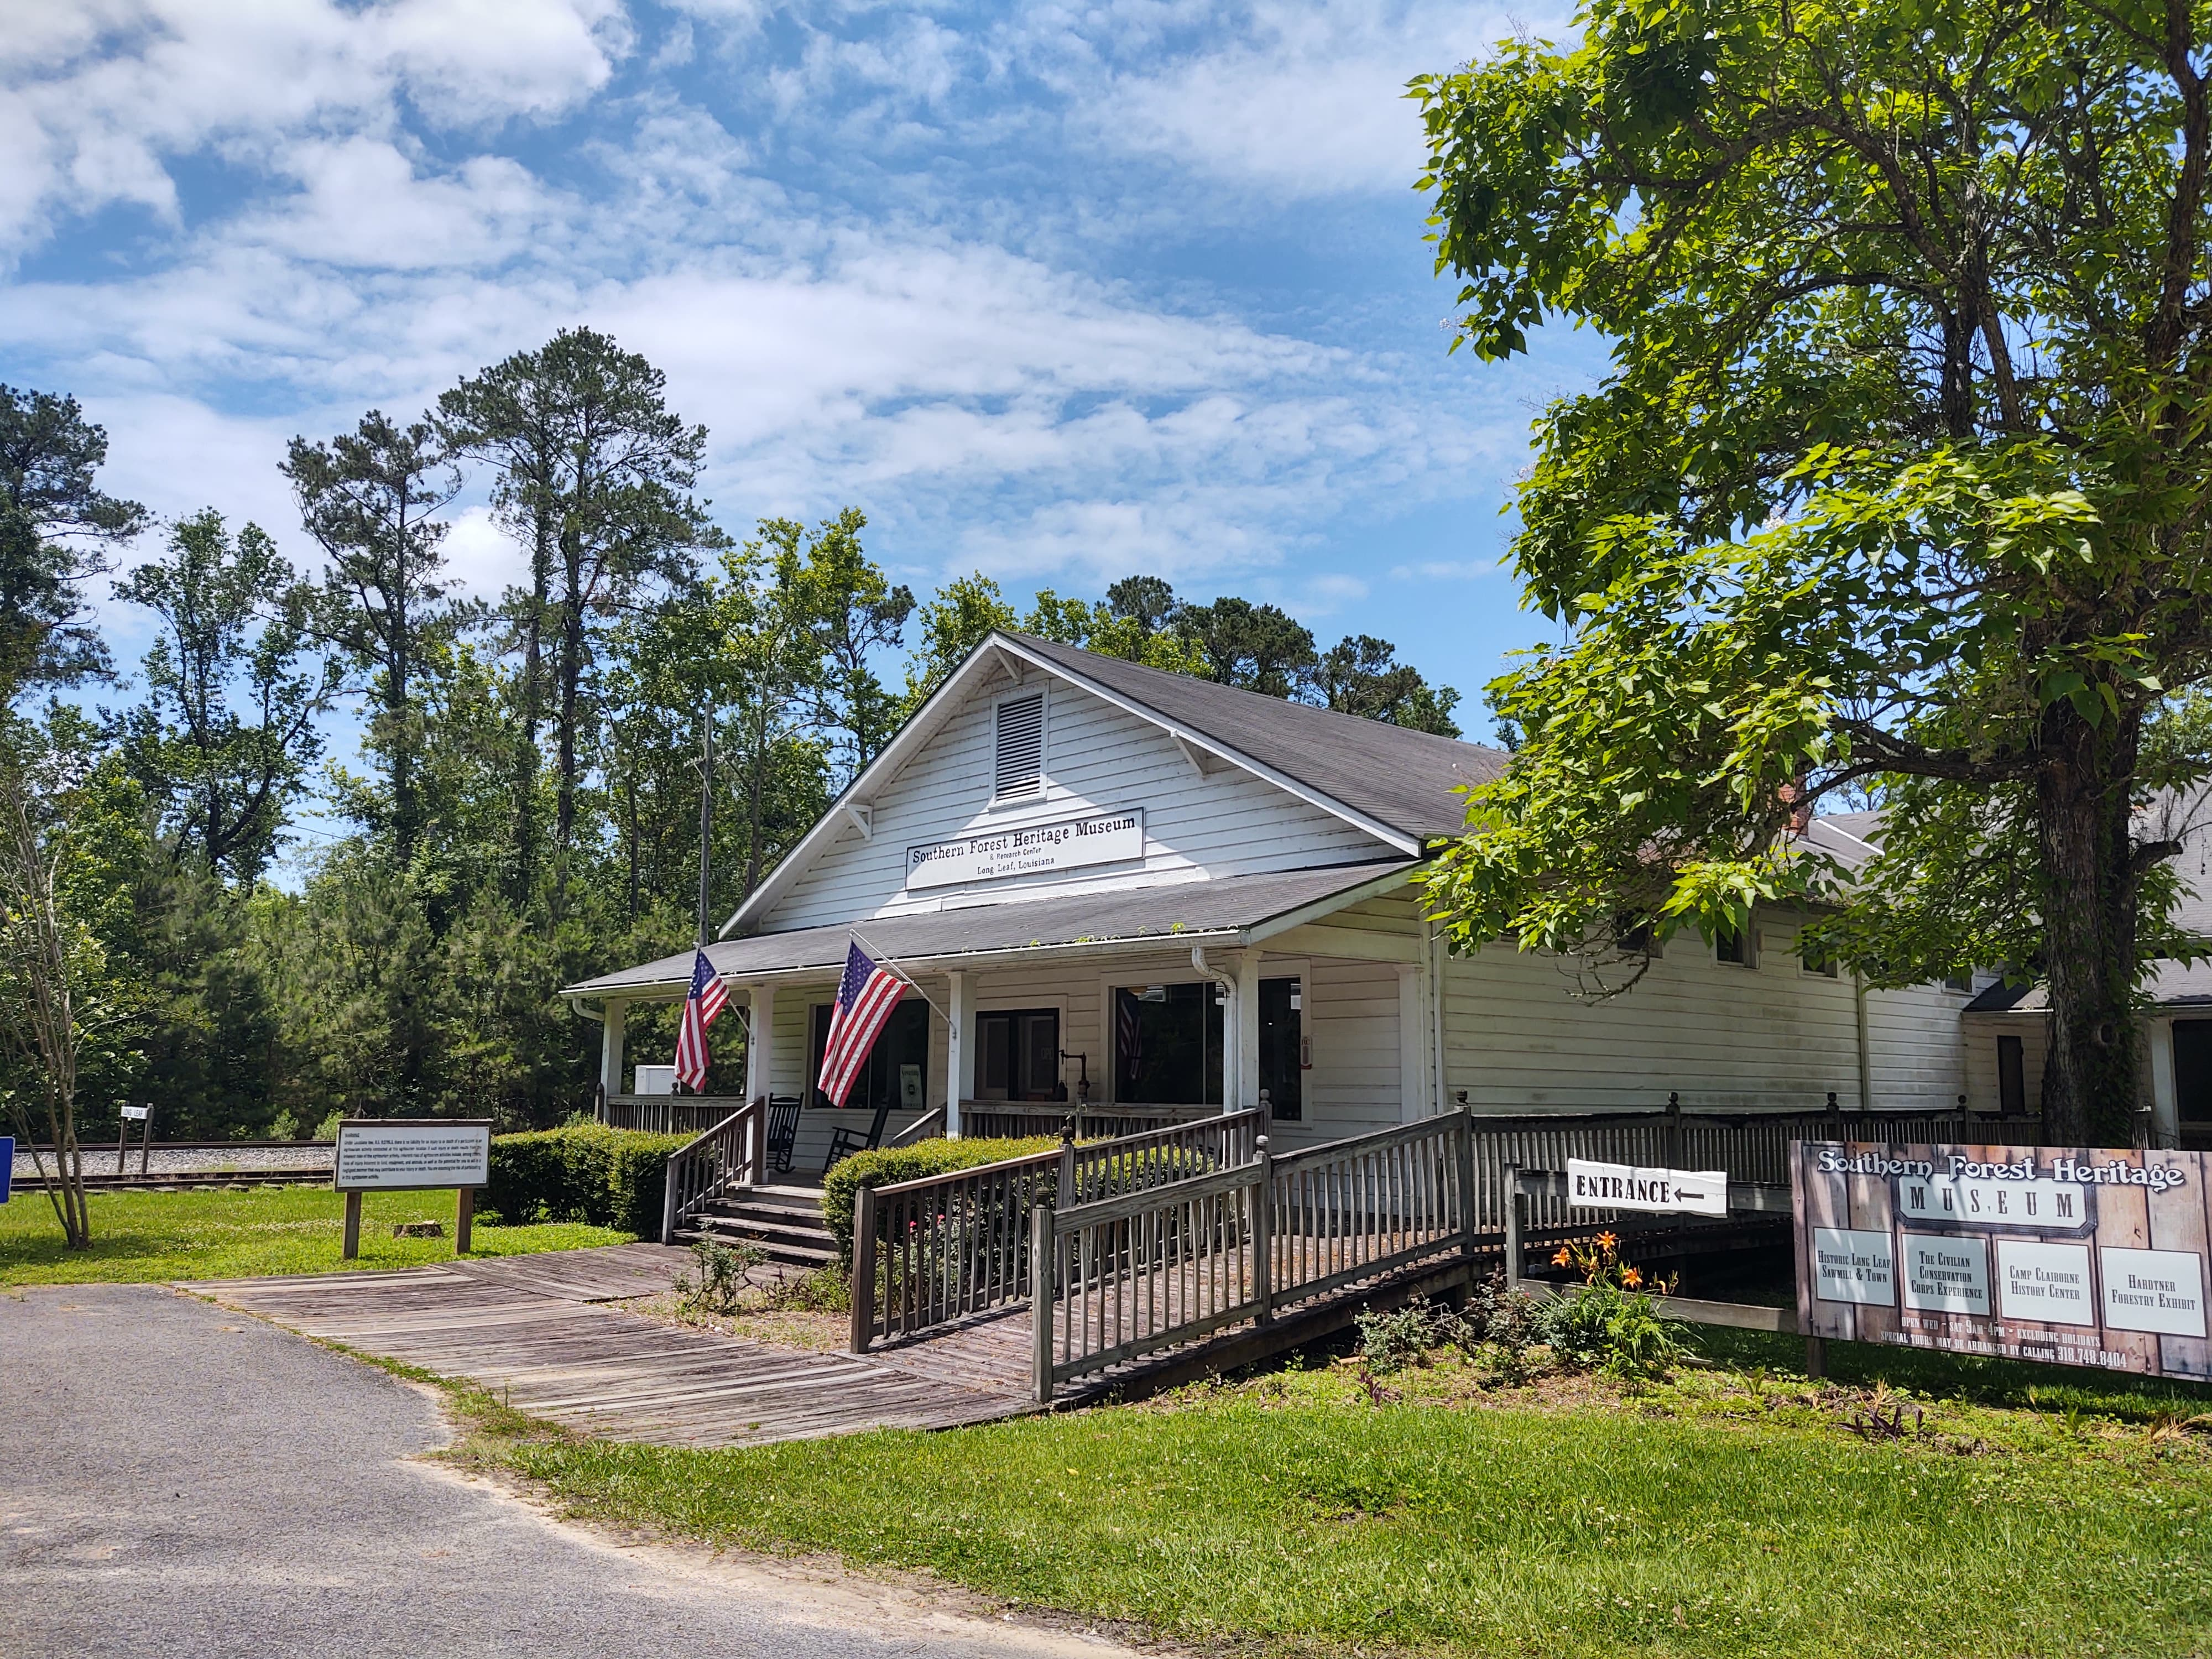 Southern Forest Heritage Museum Tours